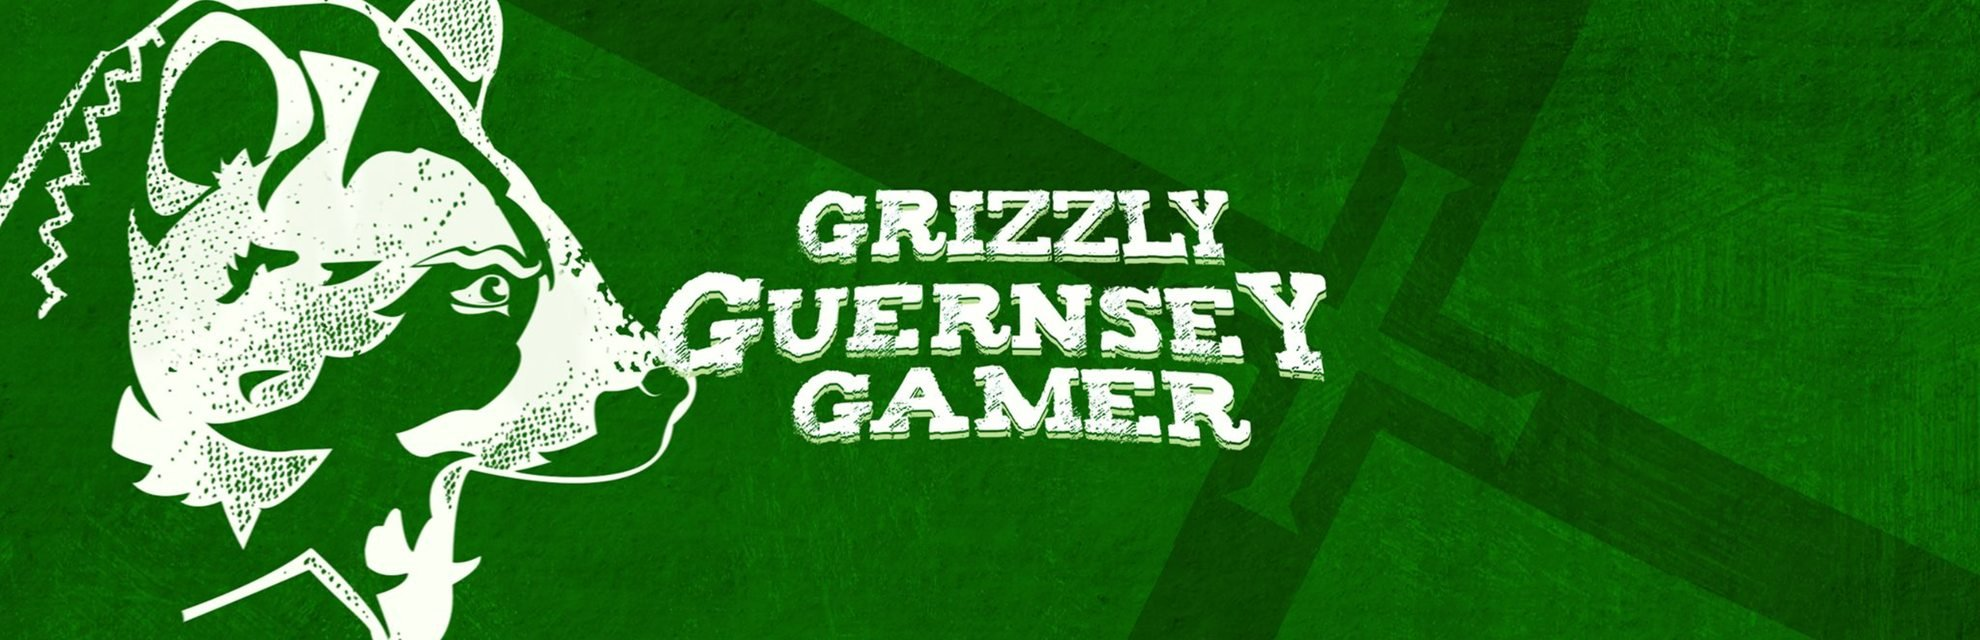 Grizzly Guernsey Gamer blog header photo